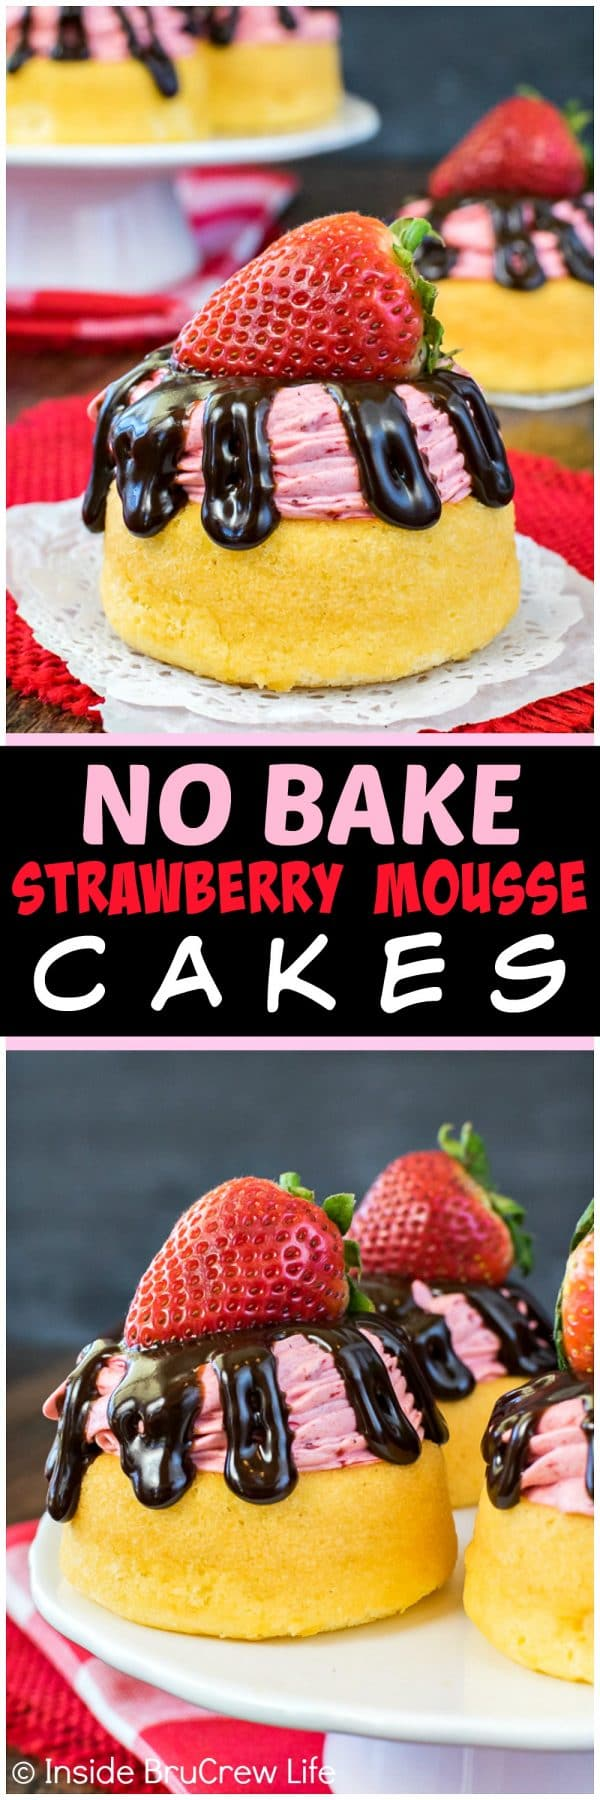 No Bake Strawberry Mousse Cakes - chocolate drizzles, fruit, and strawberry mousse make these little cakes look like they came from the bakery. Great dessert recipe for summer picnics or parties!